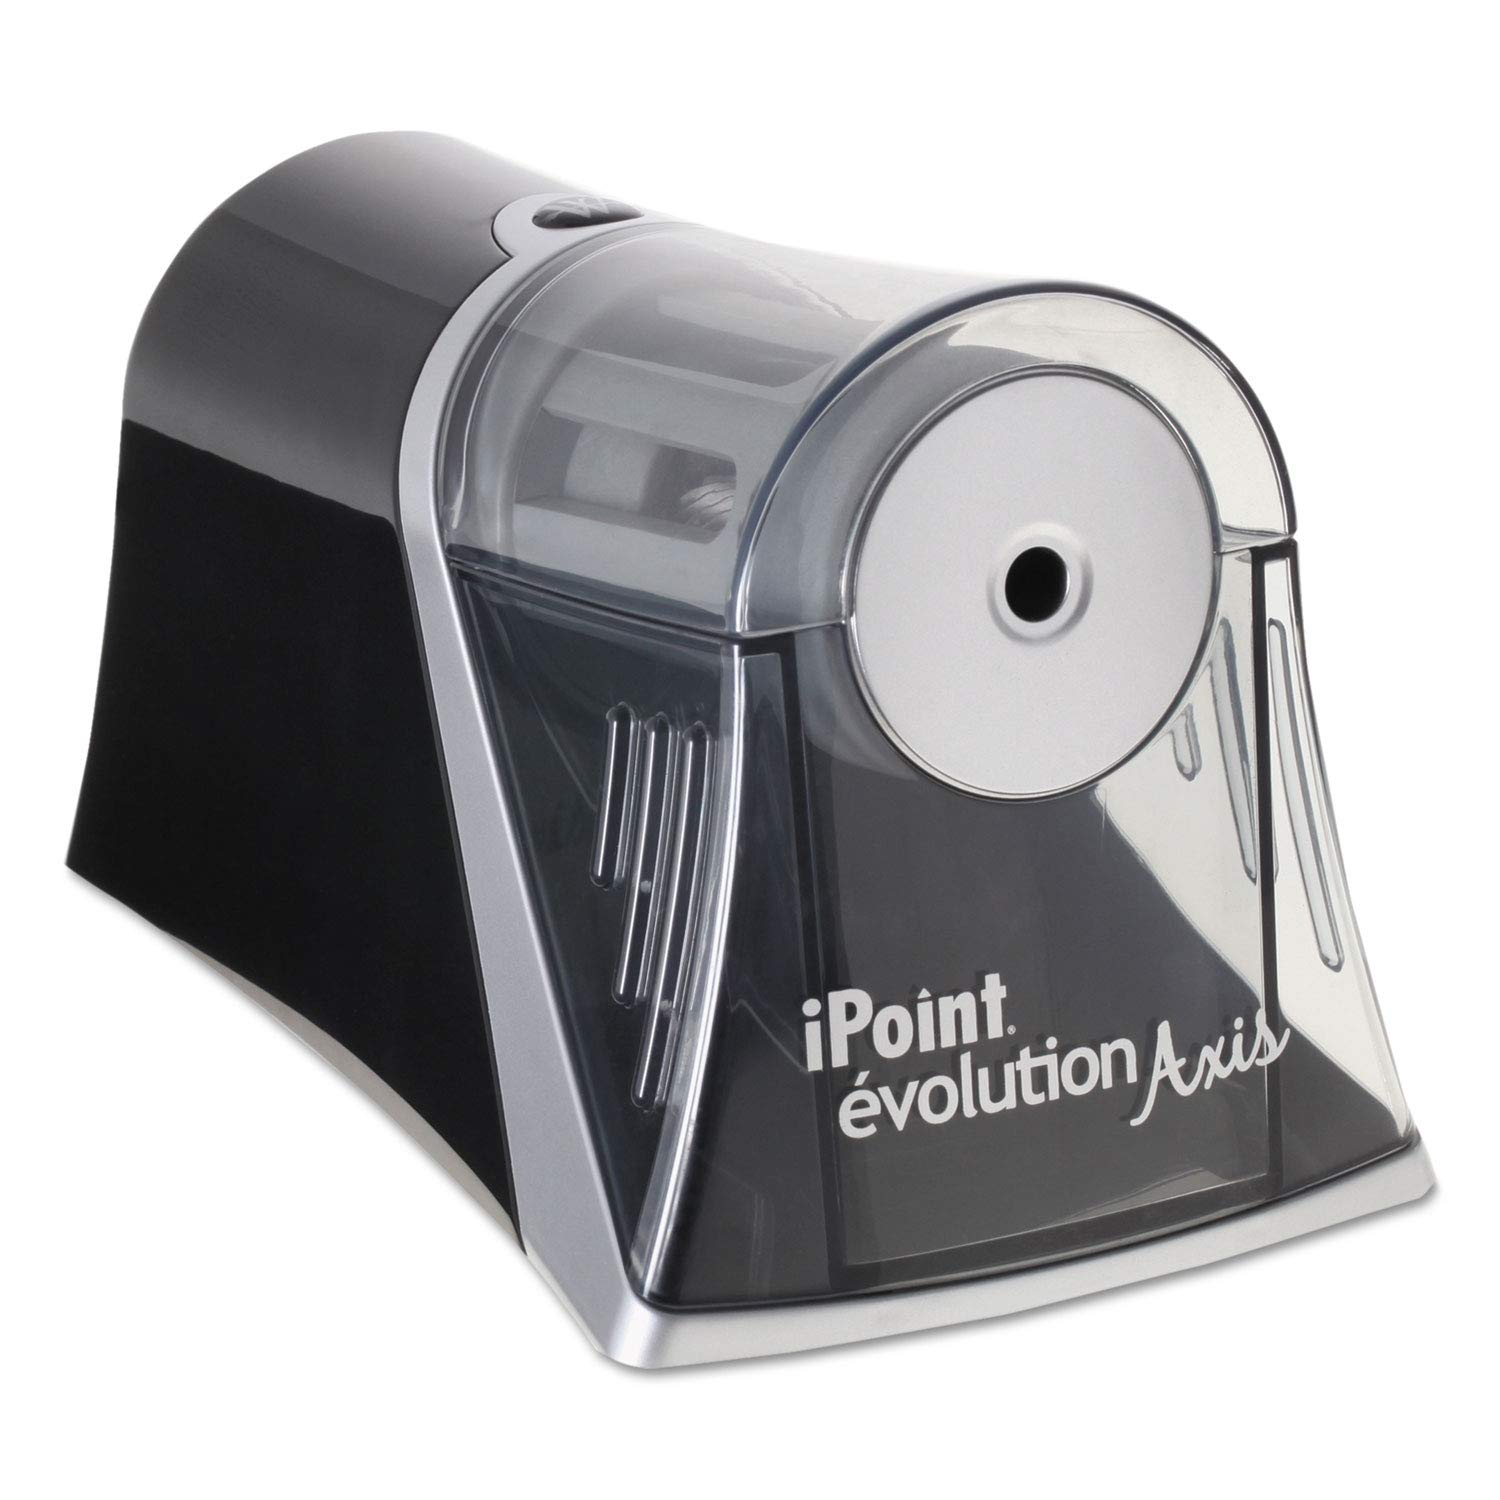 iPoint Evolution Axis Pencil Sharpener, Black/Silver, 4 1/4 w x 7d x 4 3/4h - 15510 by iPoint (Image #1)